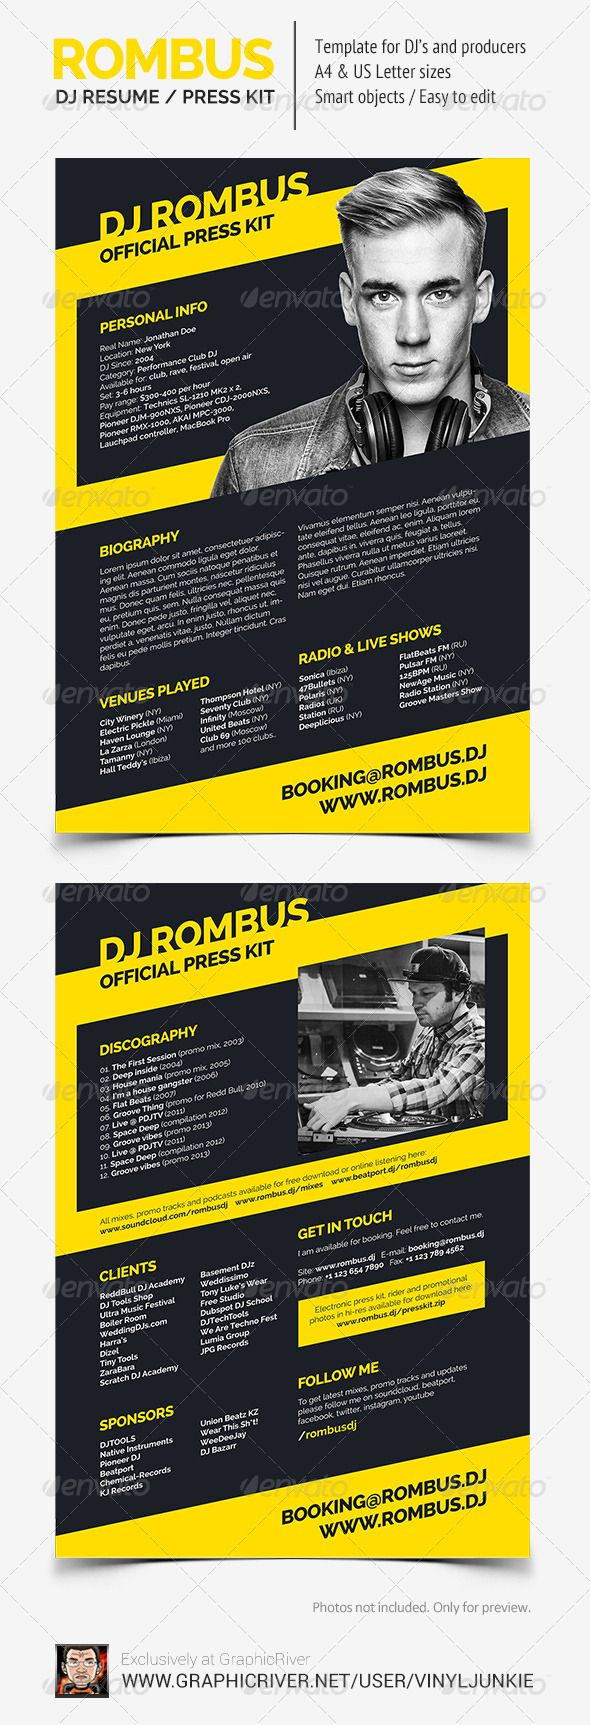 15 best images about dj press kit and dj resume templates on